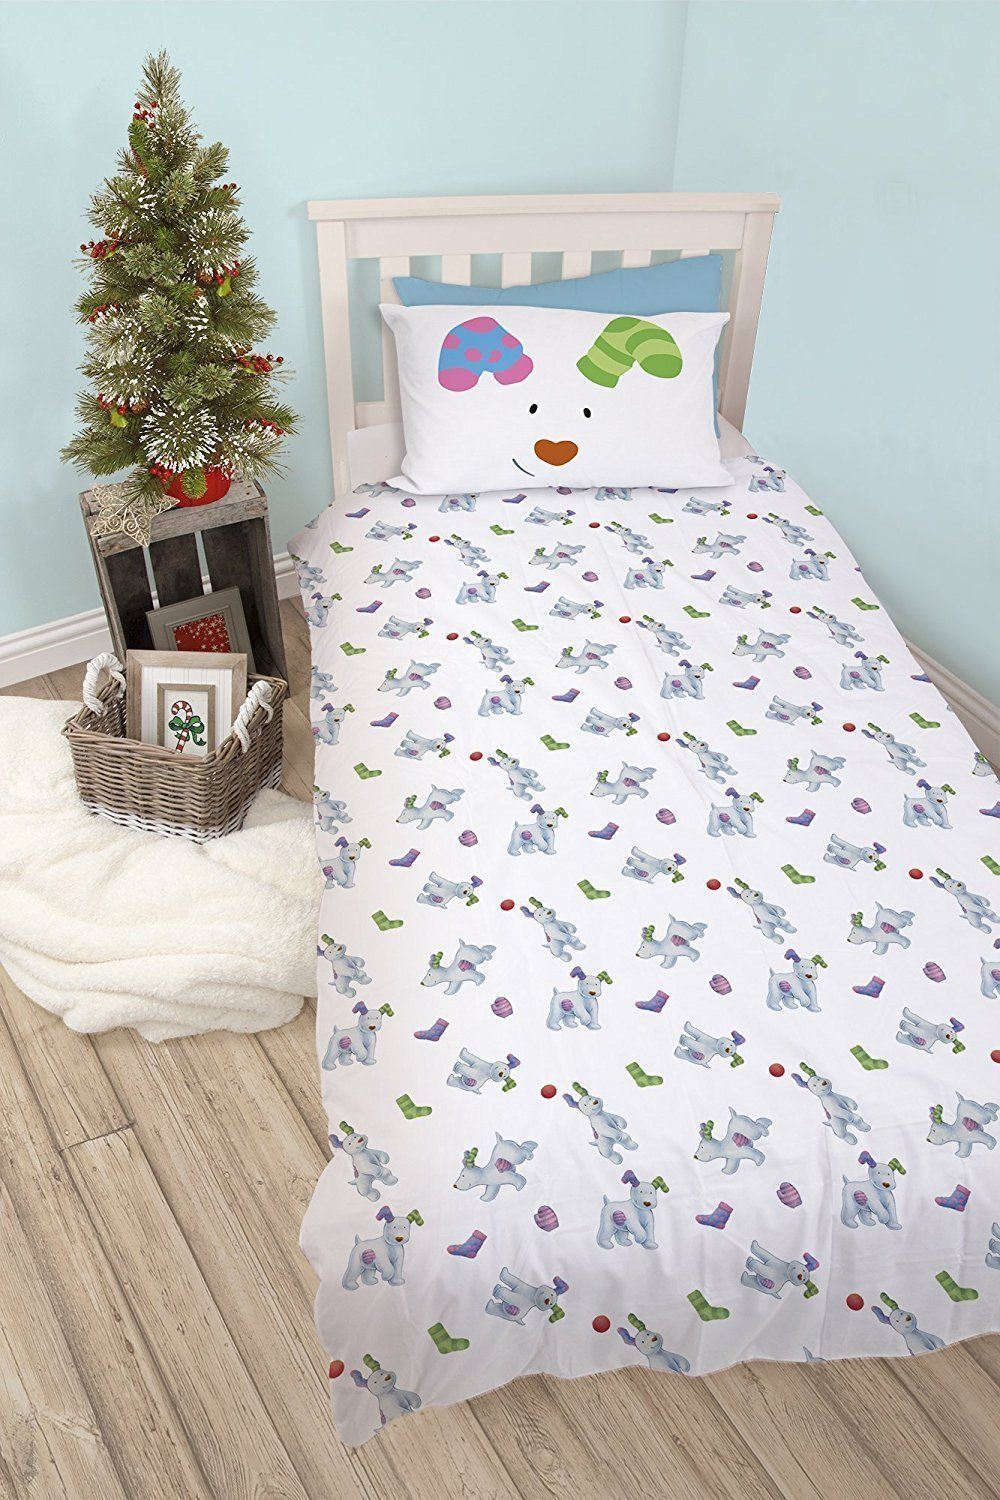 Official-The-Snowman-Duvet-Cover-Single-Double-Reversible-Bedding-Fleece-Blanket thumbnail 16